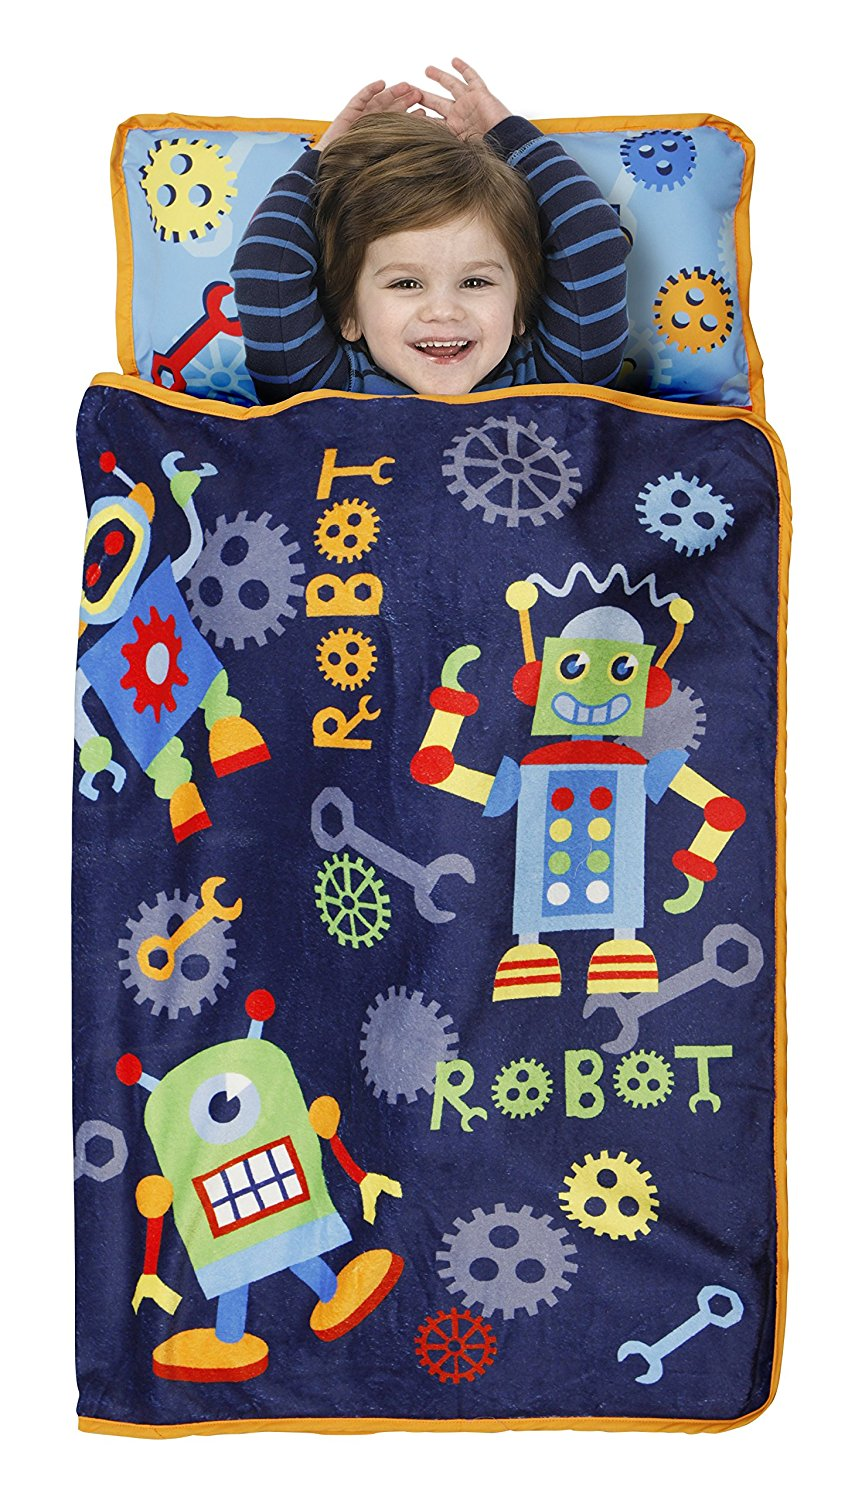 Toddler Nap Mat, Action Robots Blue Red, Great for Day Care, Overnights, and Nap Time By Baby Boom by Baby Boom